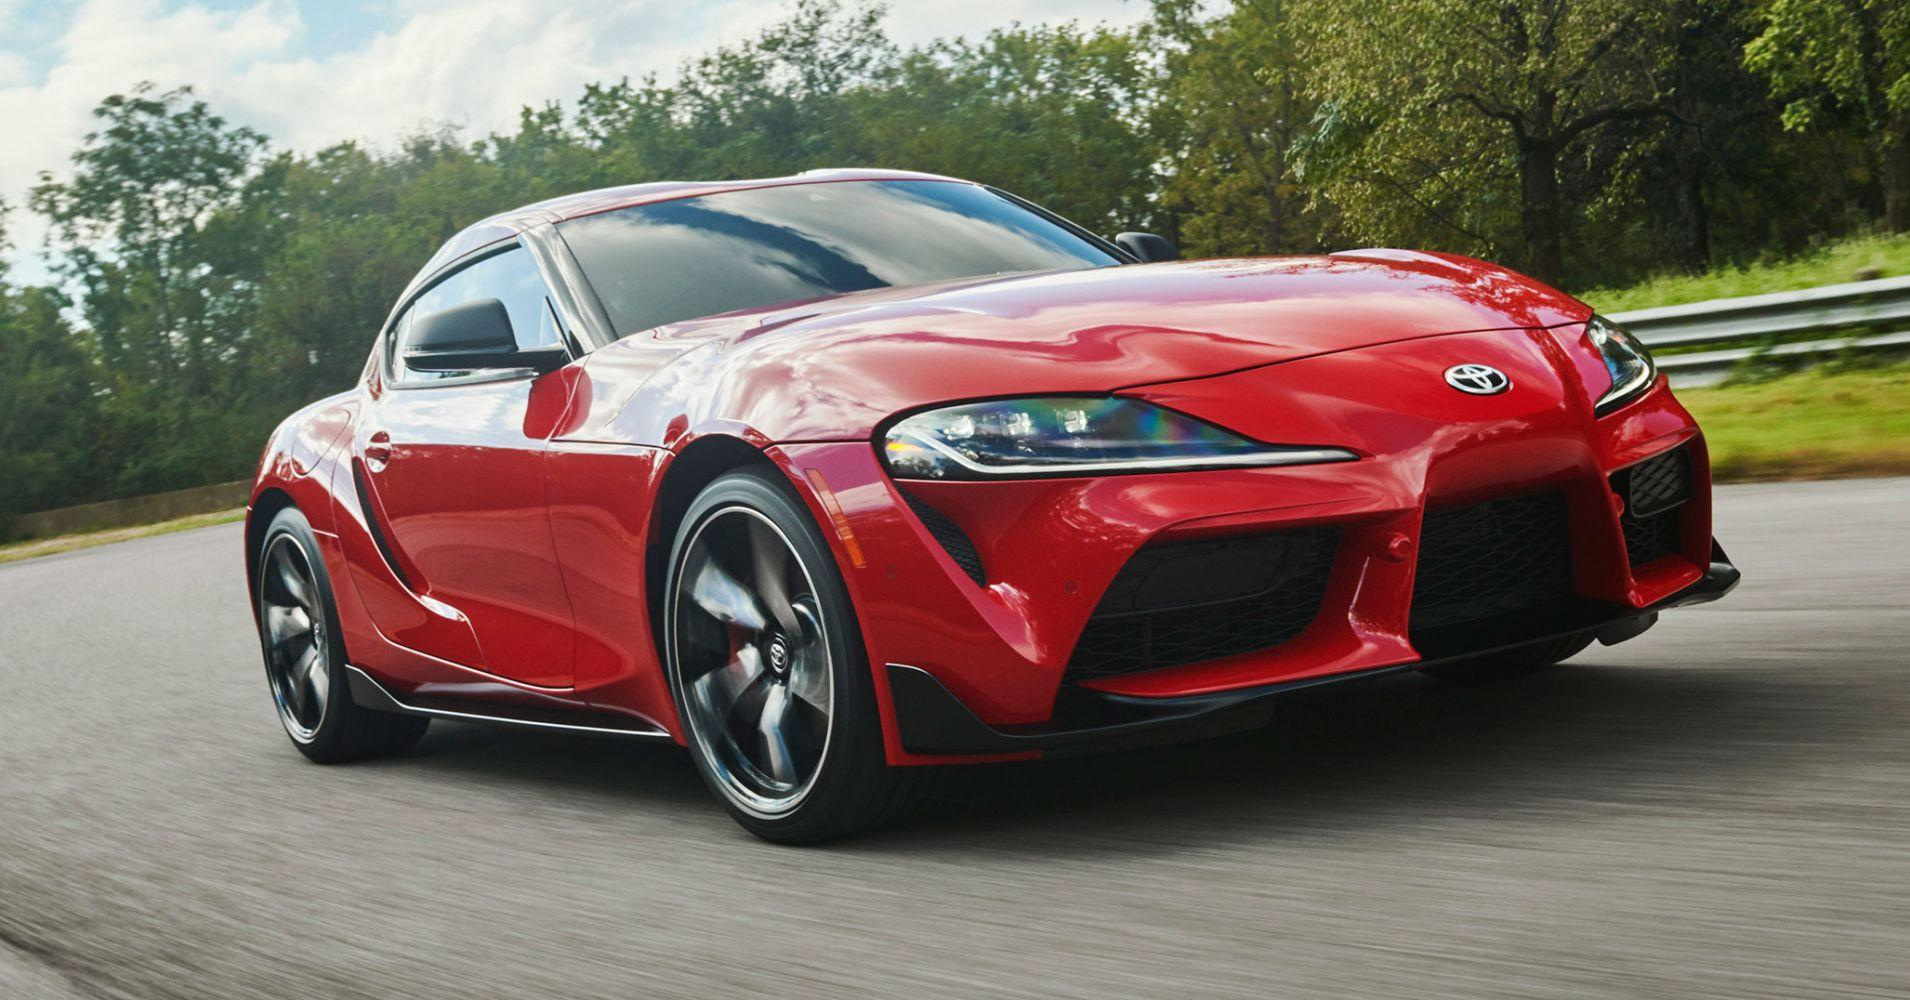 Review: The 2020 Toyota Supra was worth the long wait